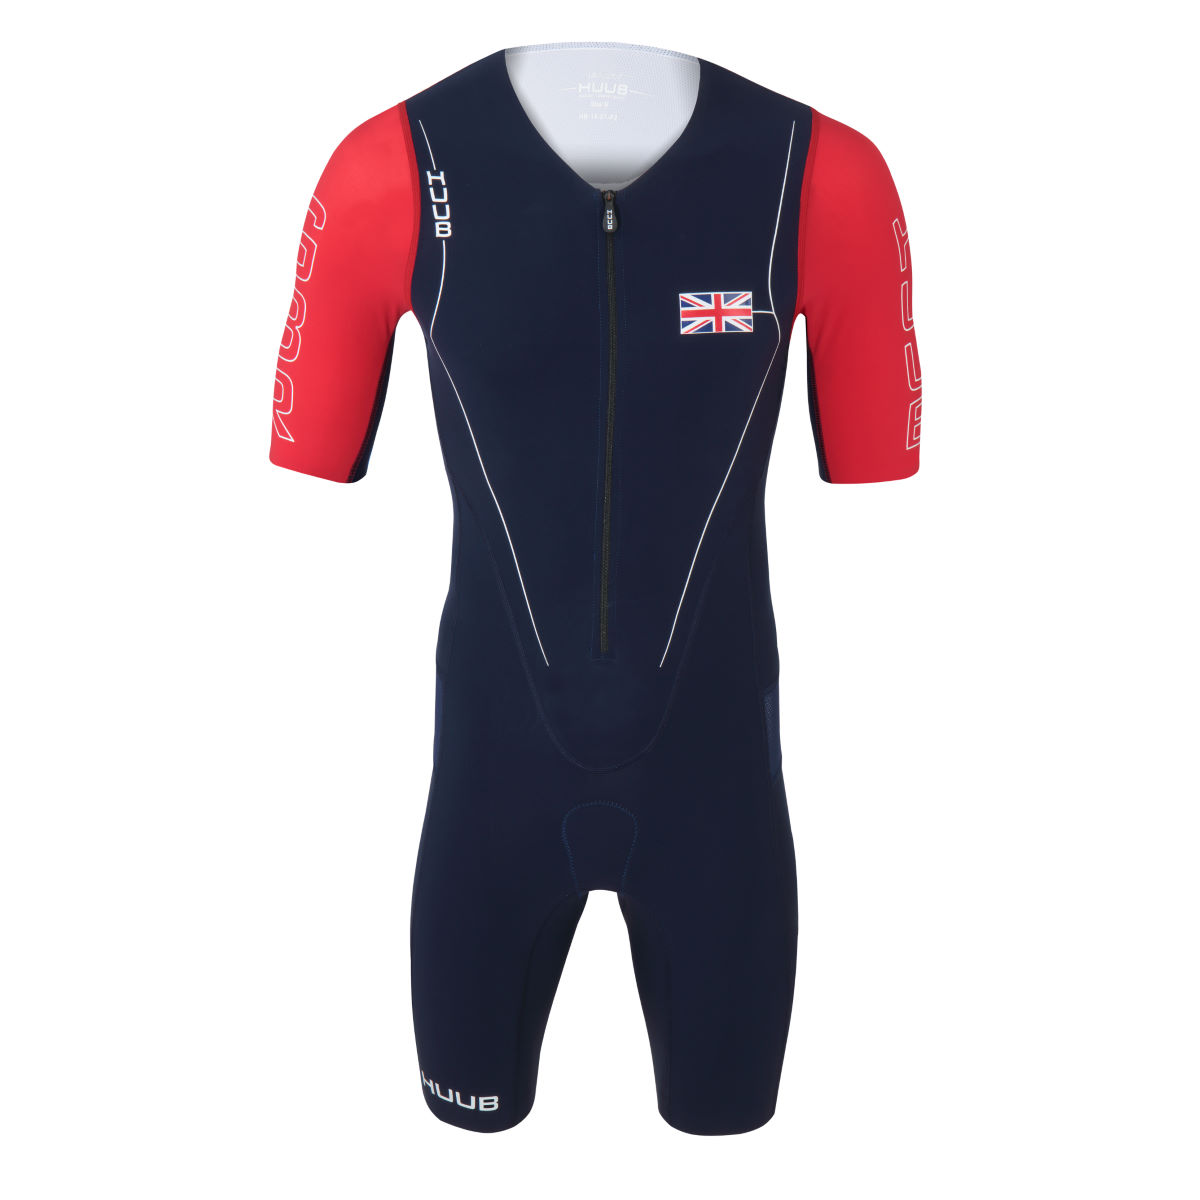 Trifonction HUUB Long Course (édition GB Patriot) - Extra Small